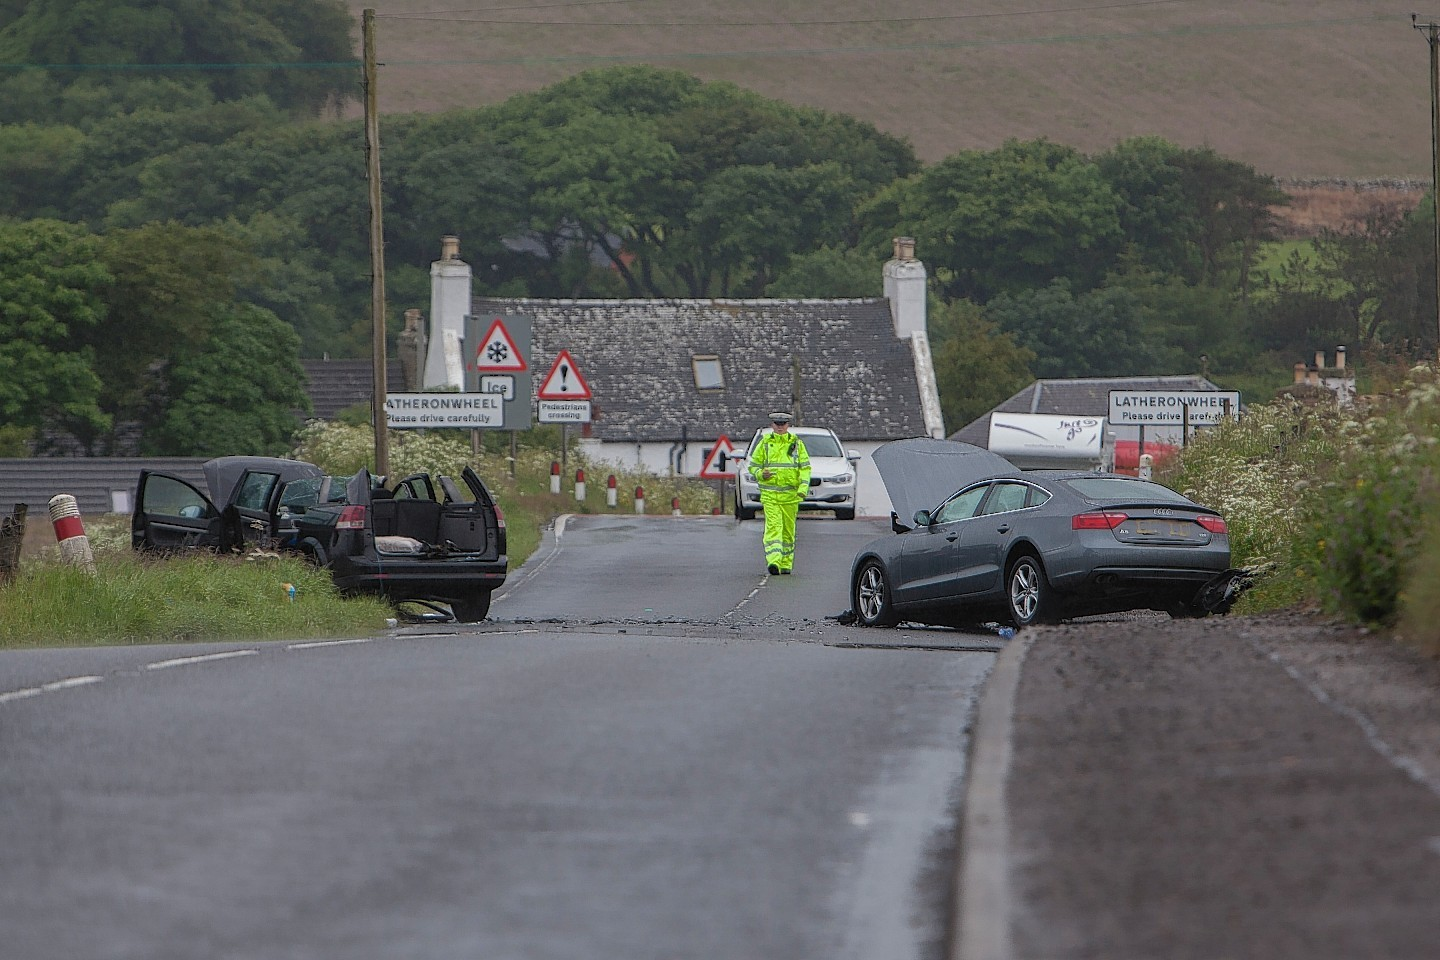 The two-car accident on the A9, just north of the village of Latheronwheel